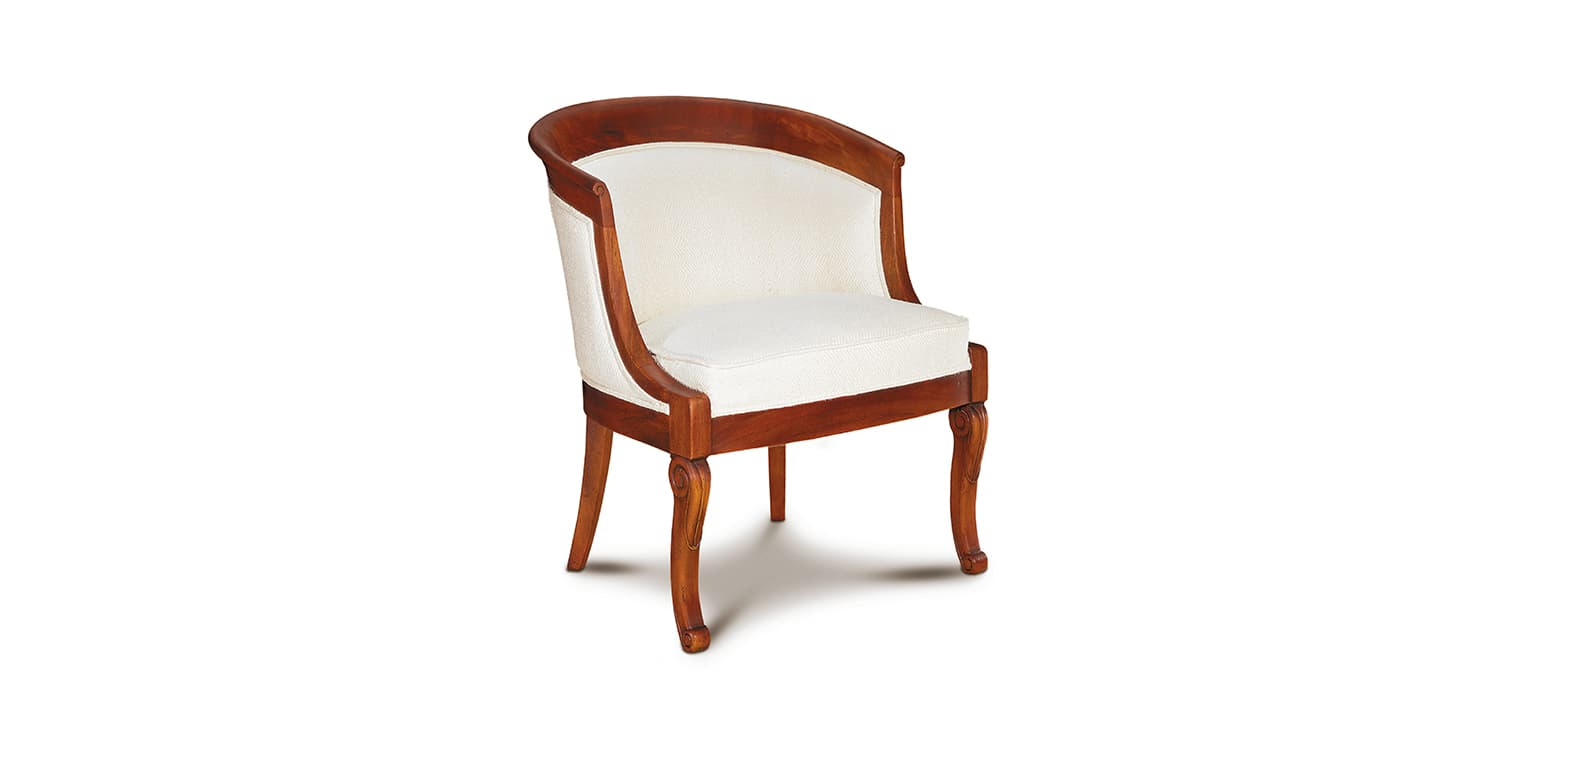 RESTORATION III CHAIR